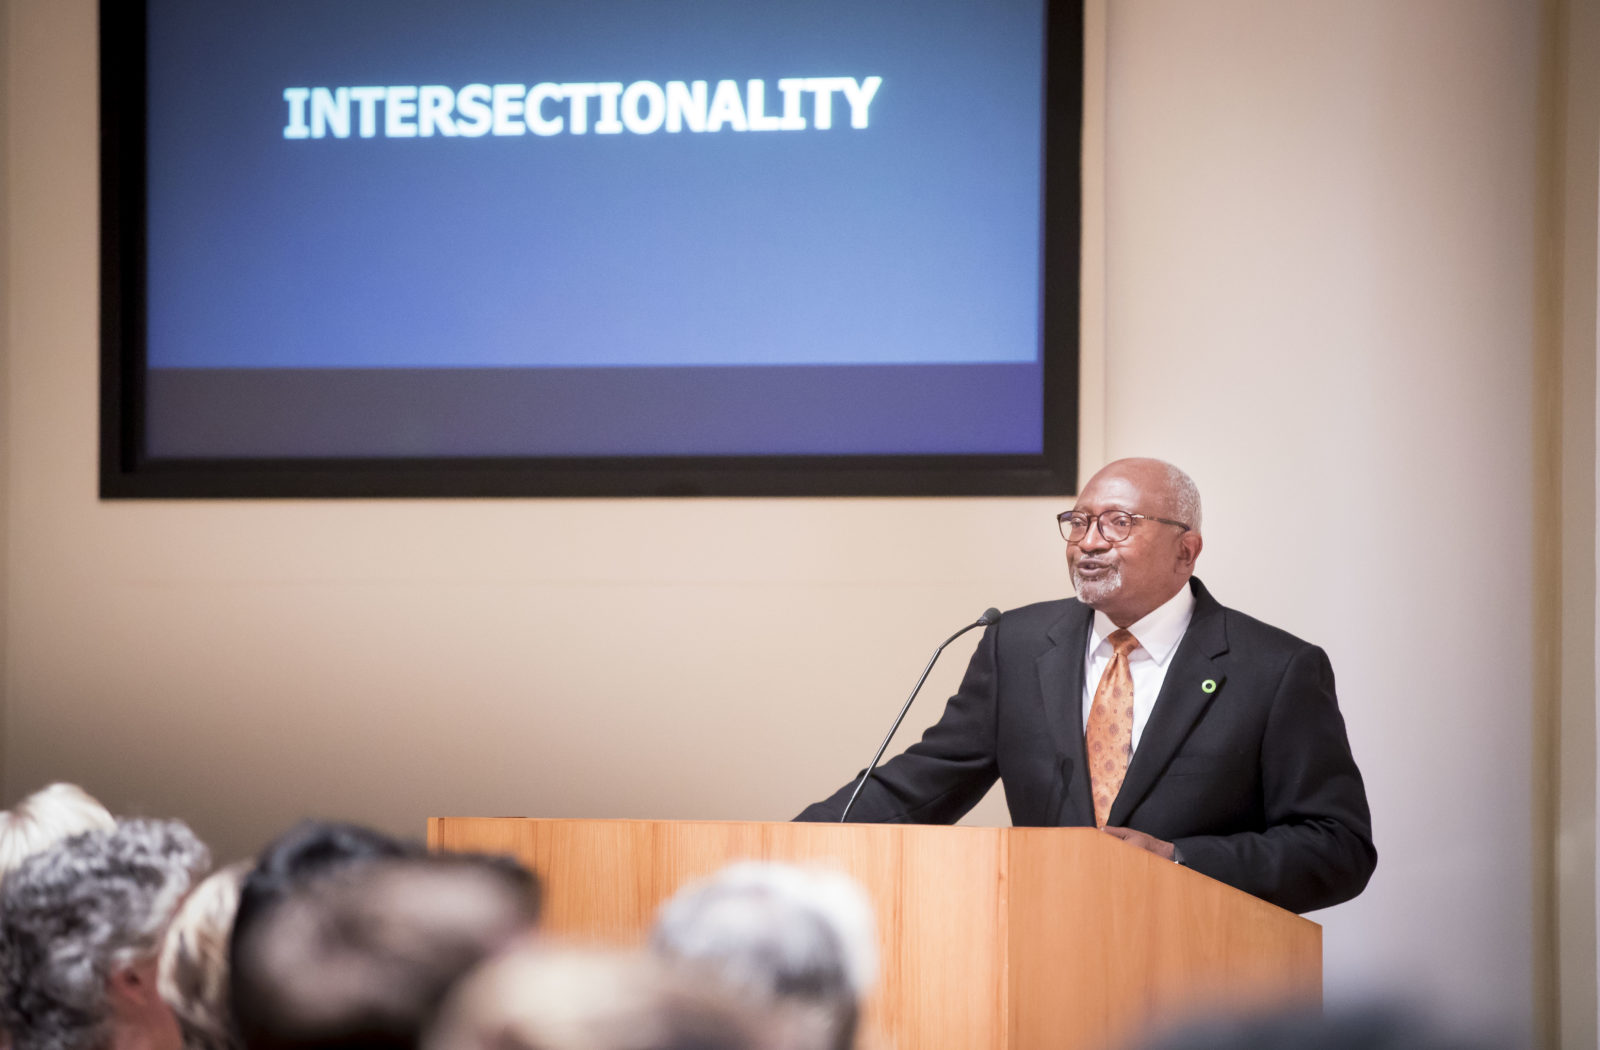 Dr. Robert Bullard gives lecture to community members at Wyatt Rotunda on Oct. 1 (Susan Urmy/Vanderbilt)